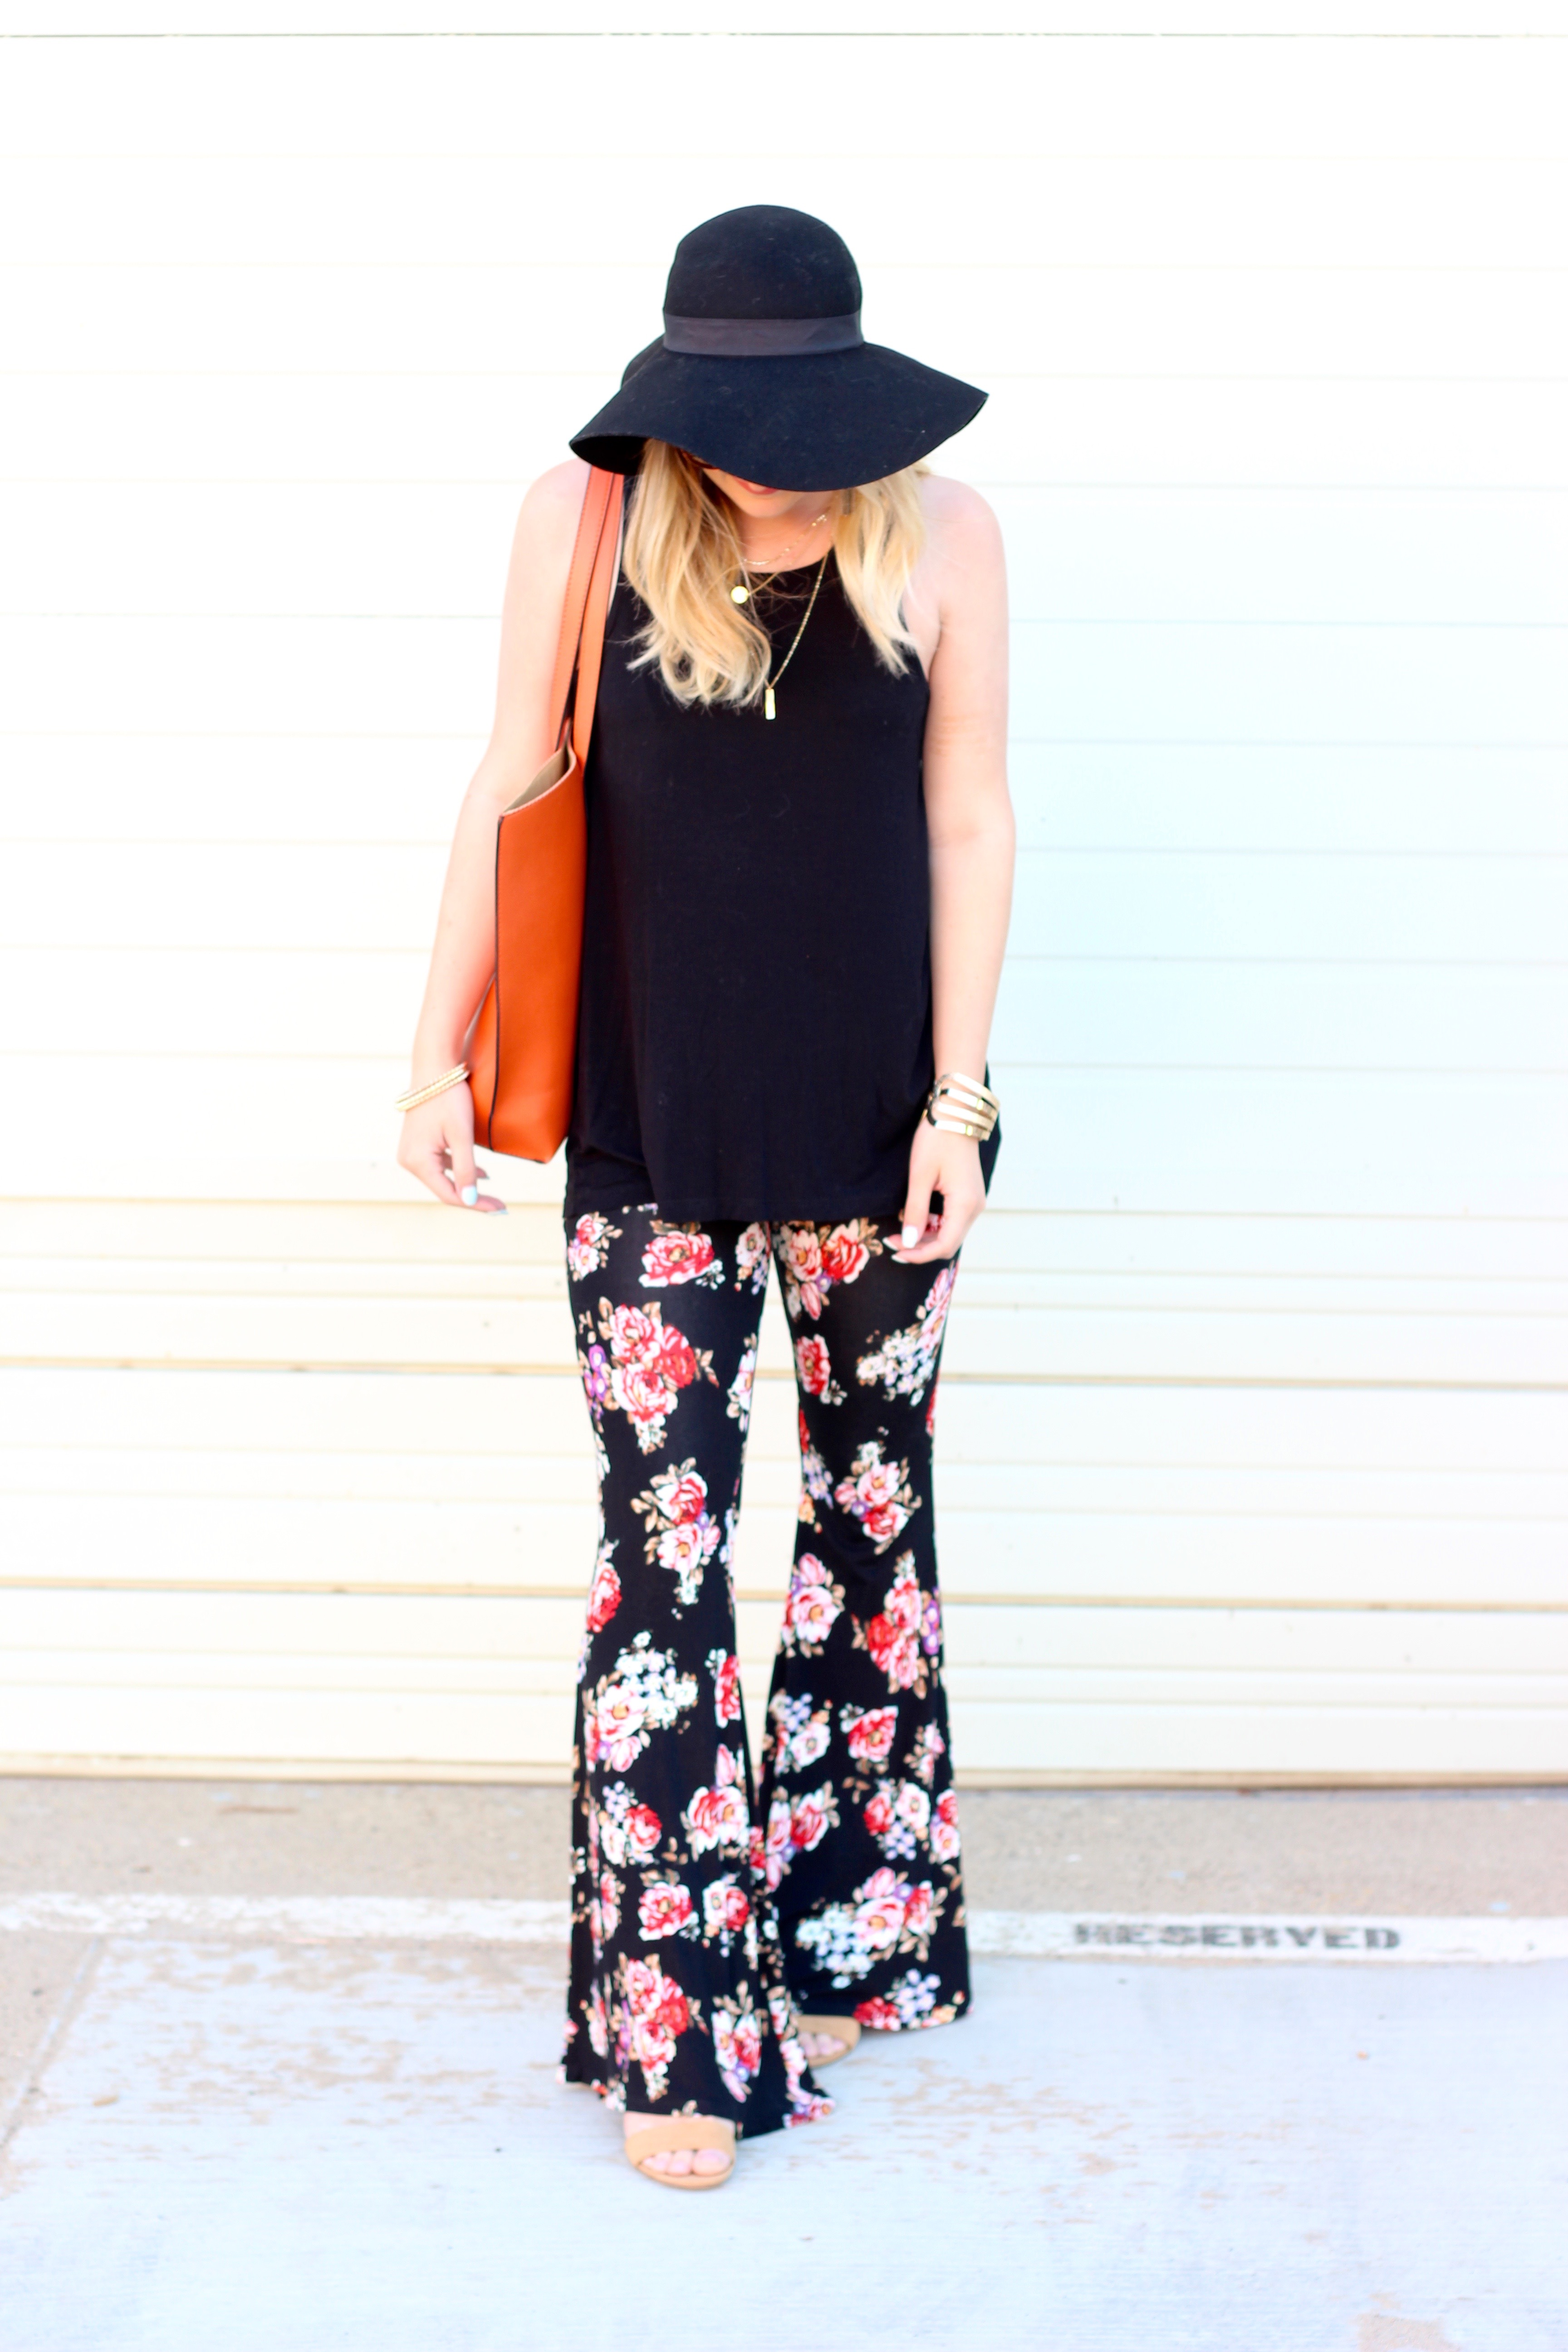 fashion outfit for the bohemian gal